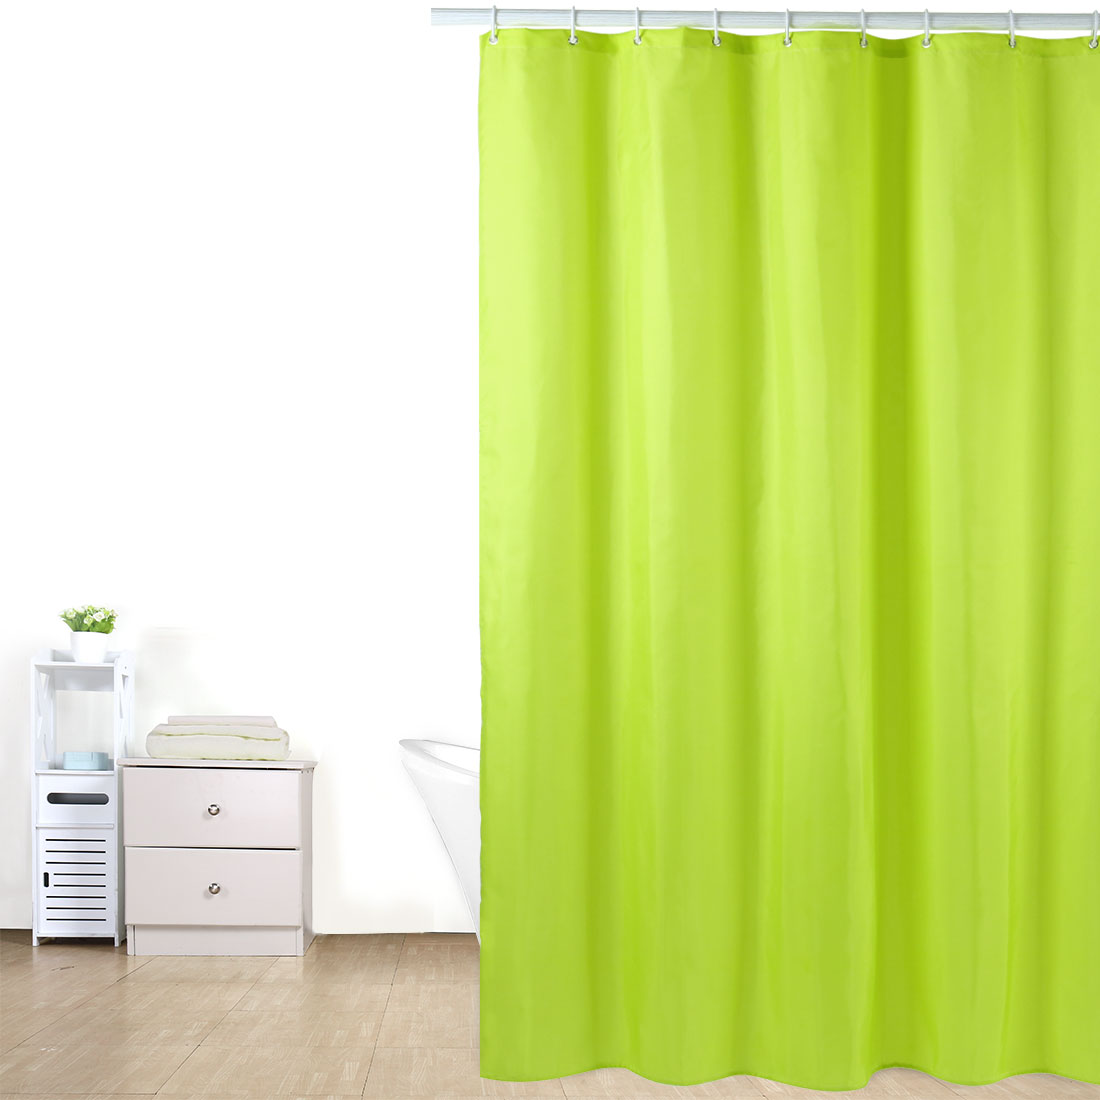 Solid Color Polyester Fabric Shower Curtain with Hooks Green 72 x 78 Inch - image 2 of 8